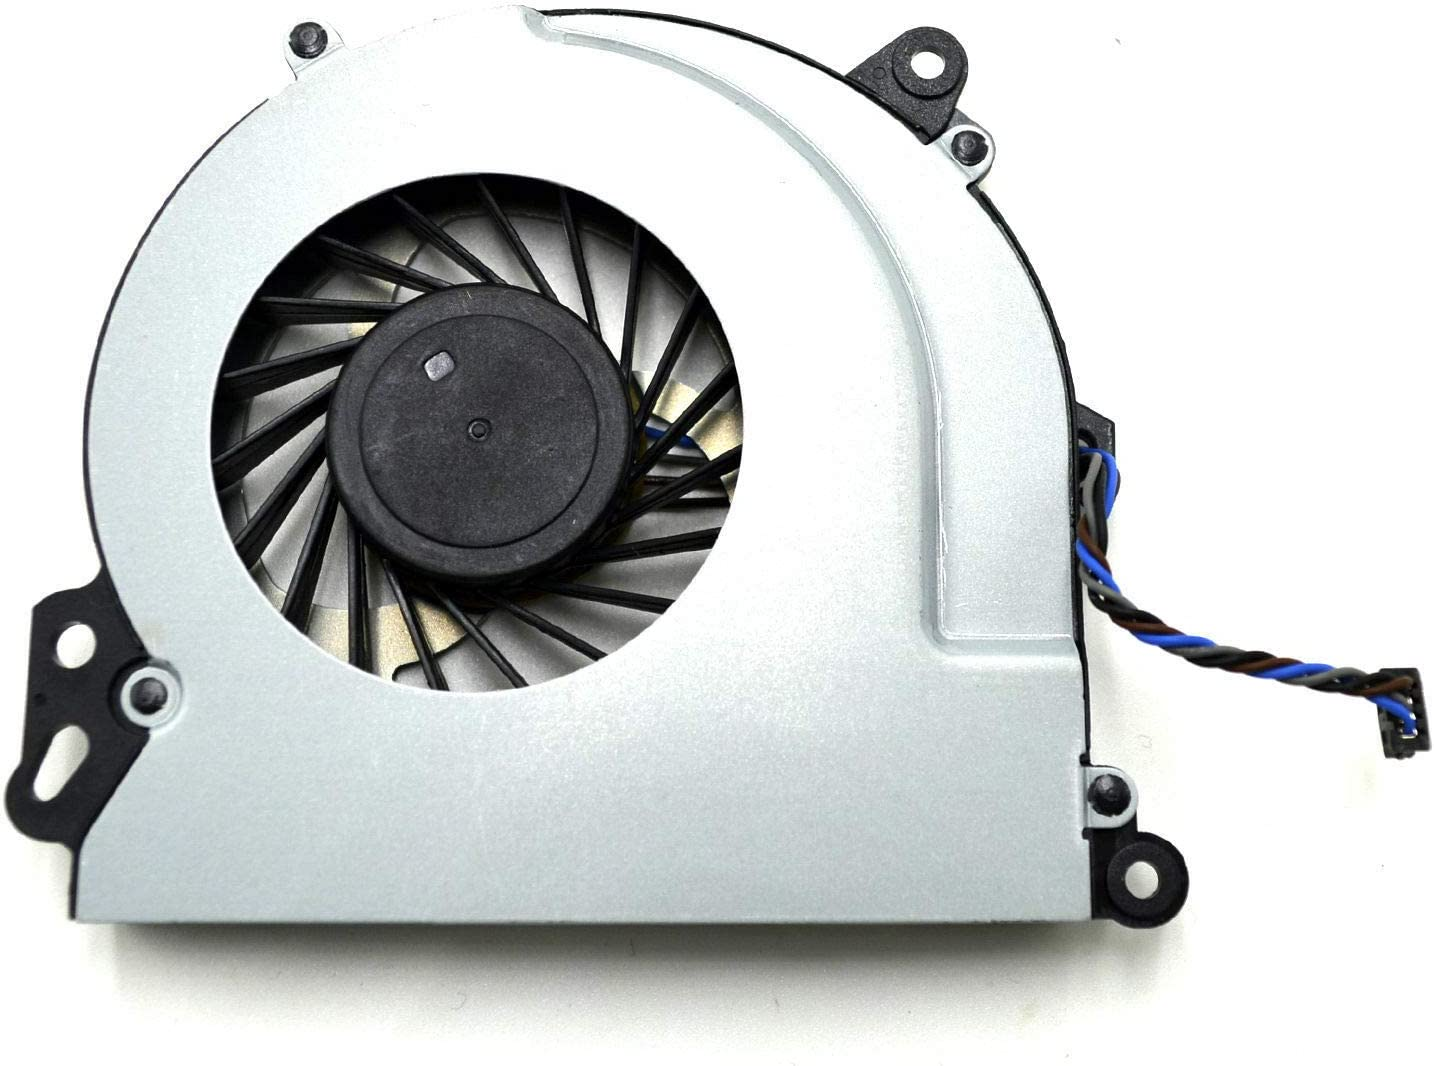 DBParts New CPU Cooling Fan For FCN Brushless Motor DFS531105MC0T-FC1M 6033B0032801, HP 720235-001 720539-001, KSB06105HB-CJ1M, ENVY TouchSmart 15-J000 17-J000 M7-J010DX 17-J142NRr 17-J153CL 17-J157CL